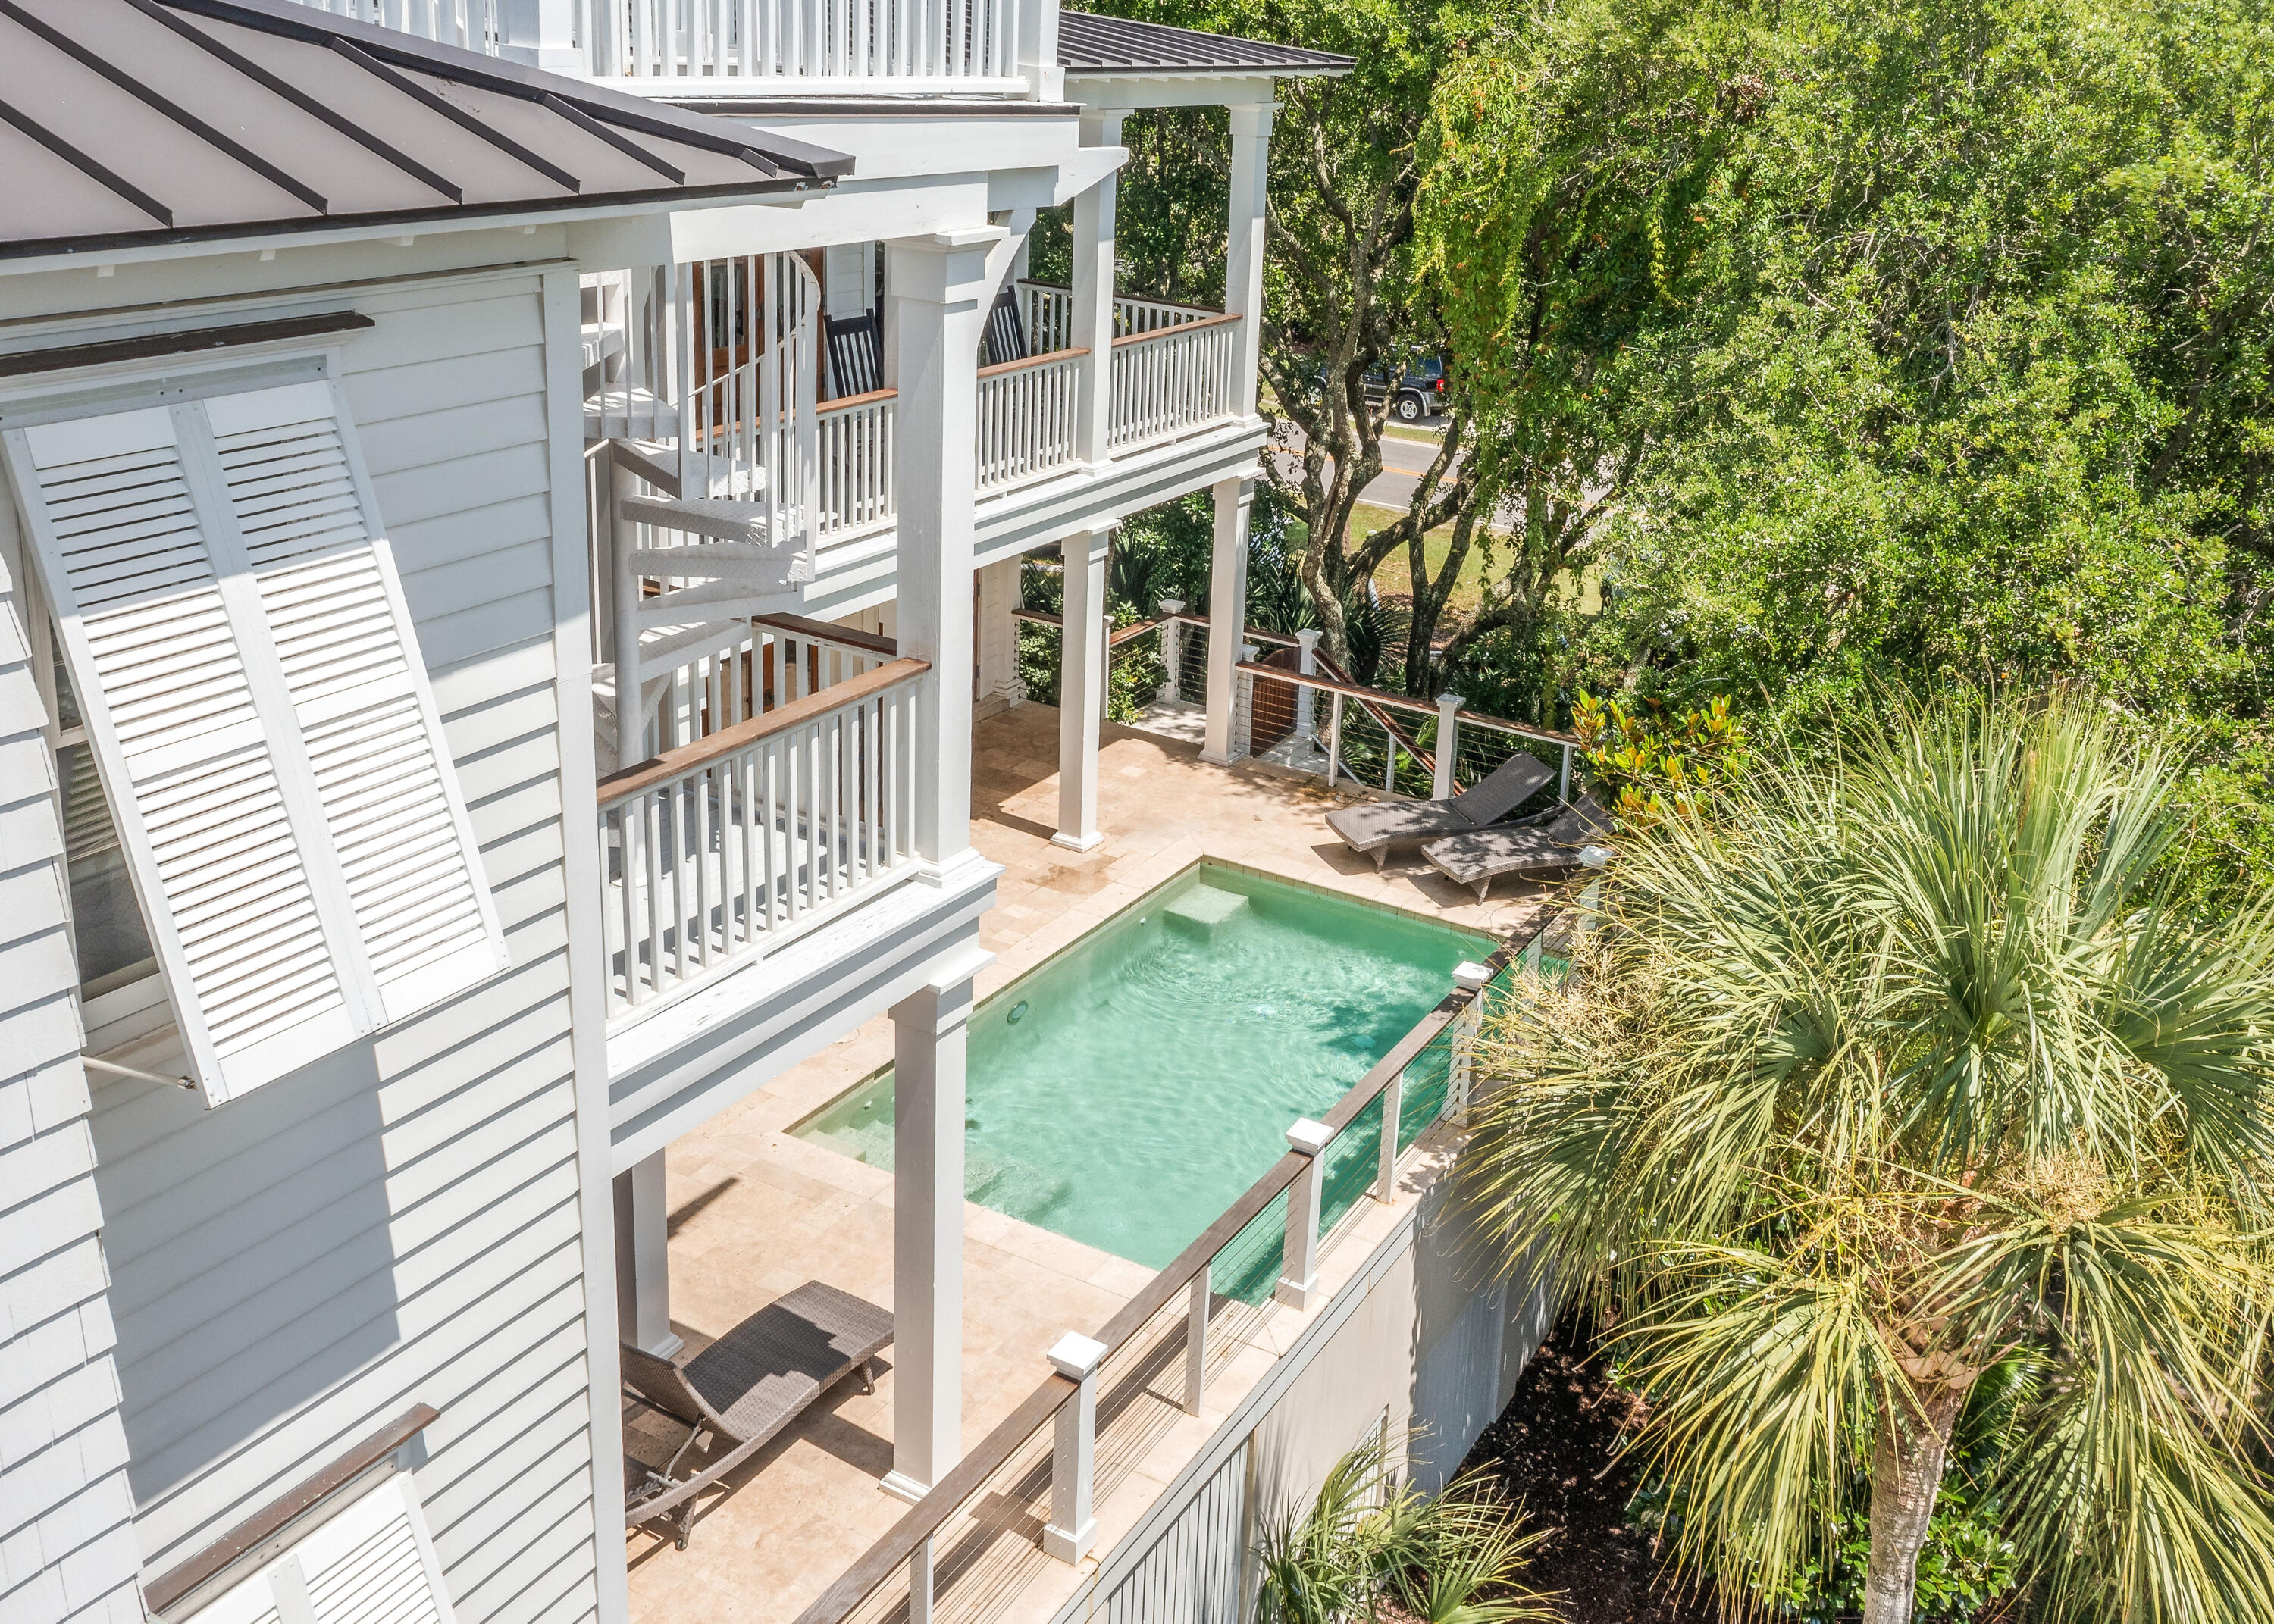 Isle of Palms Homes For Sale - 3301 Palm, Isle of Palms, SC - 29